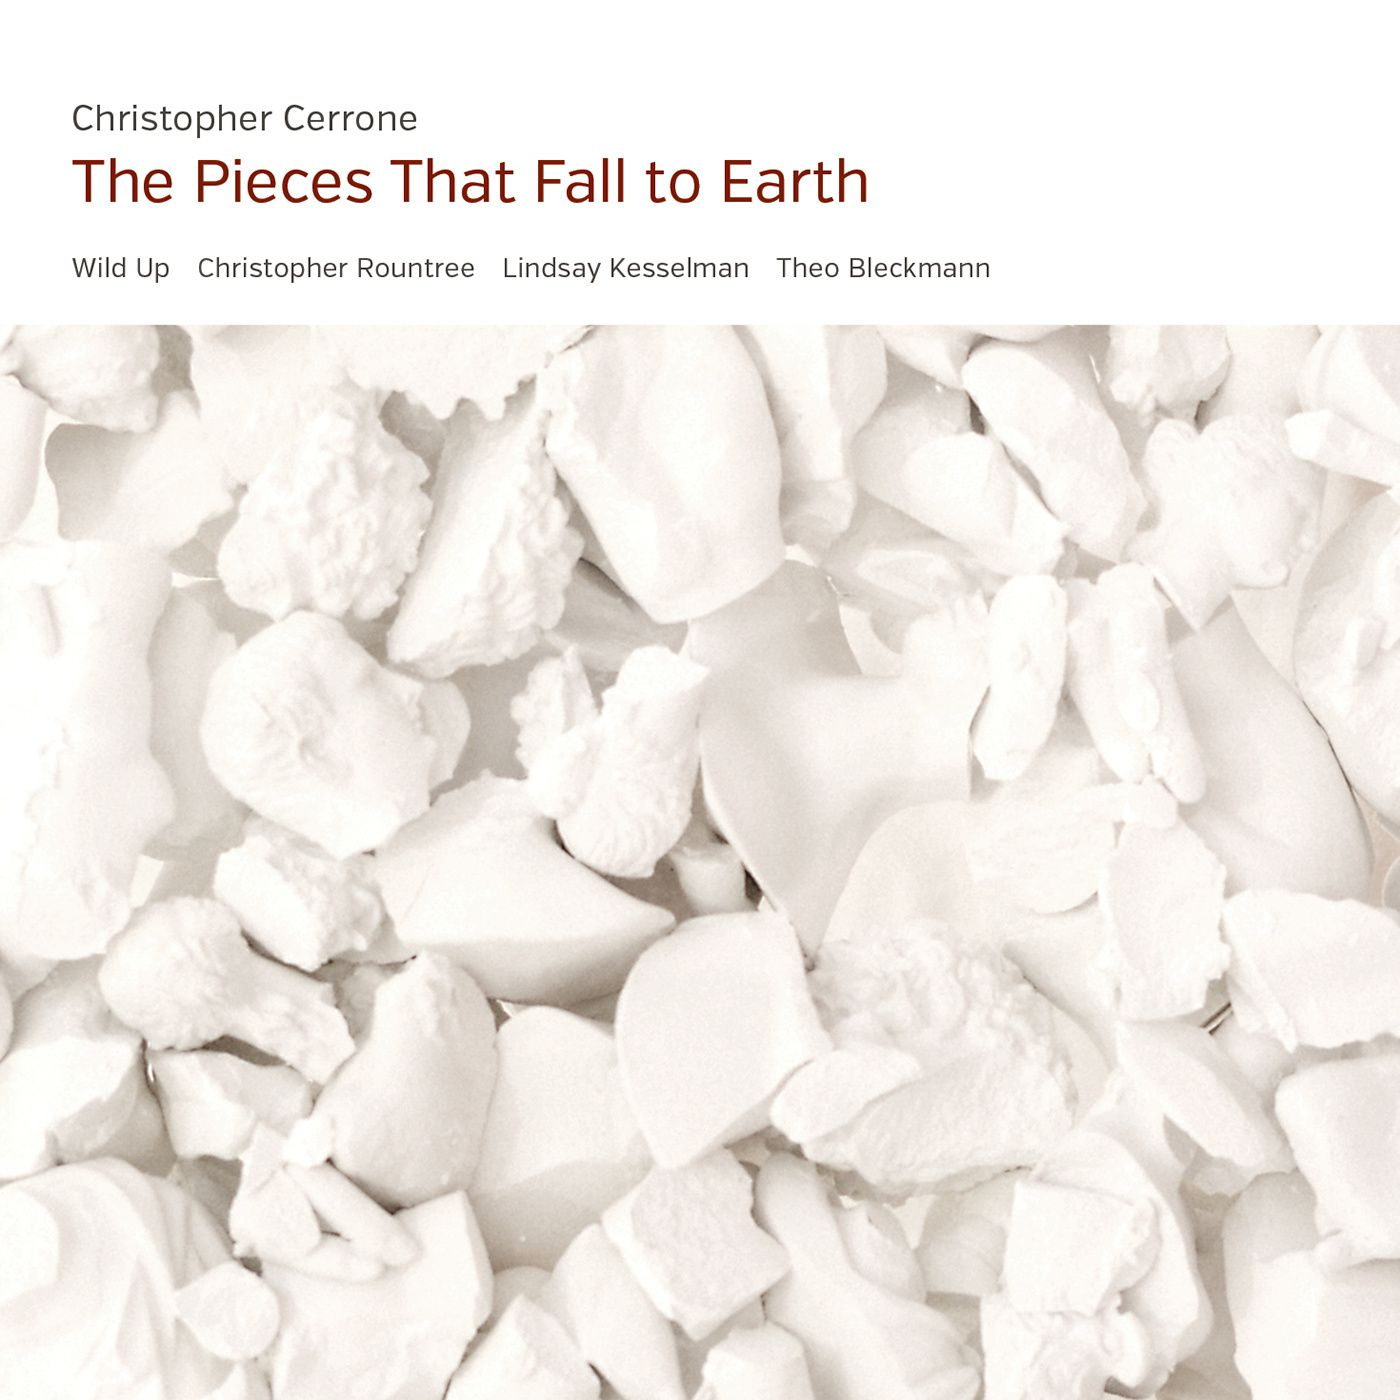 Christopher Cerrone - The Pieces That Fall to Earth